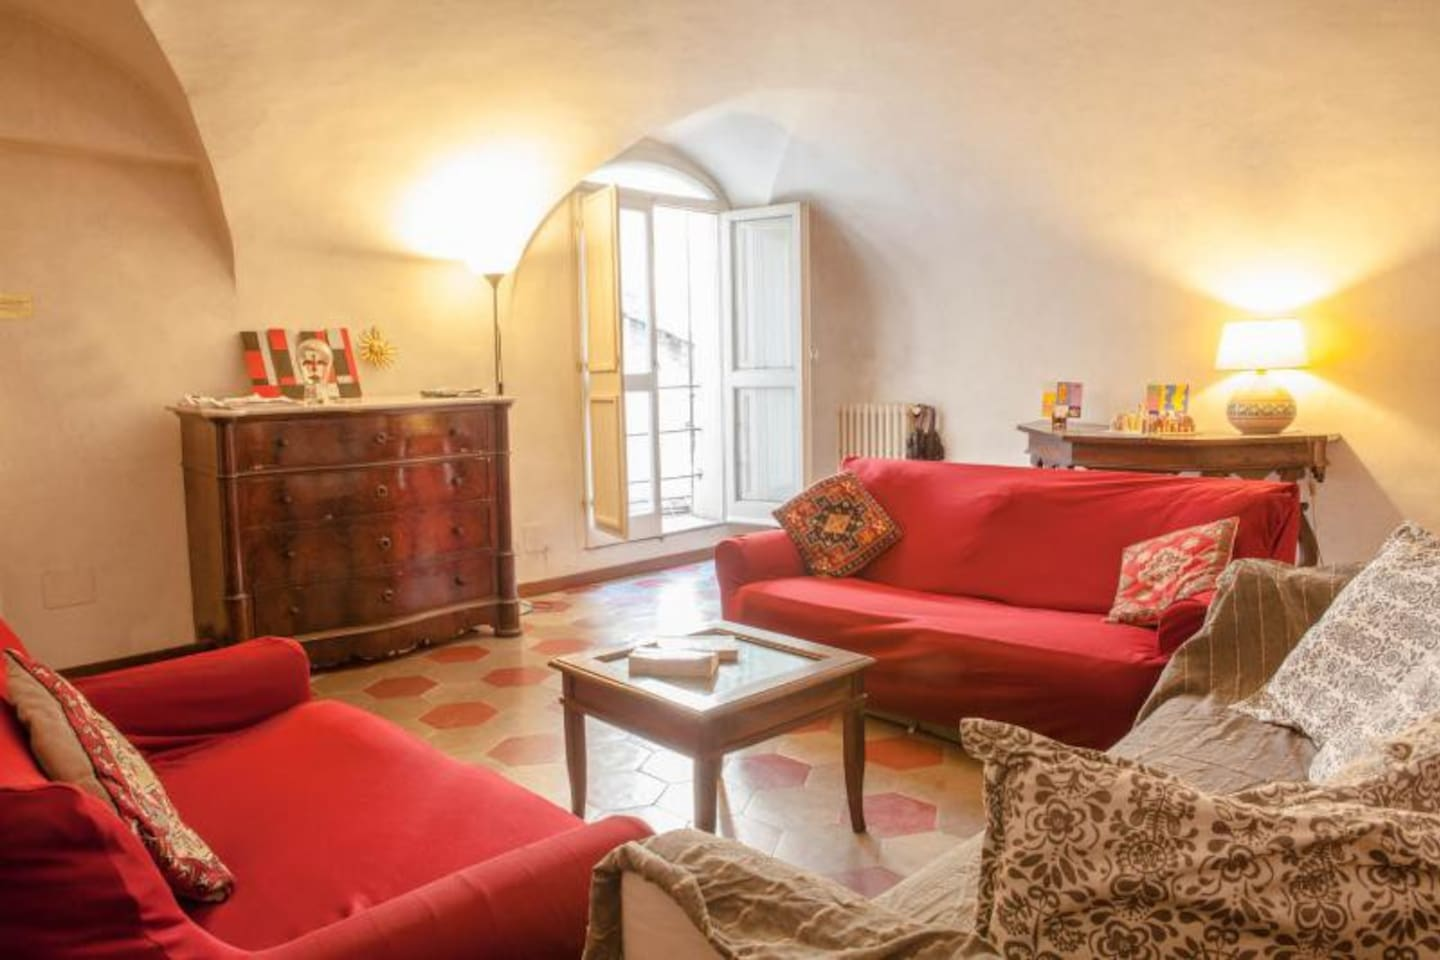 Apartment in Rome historical center